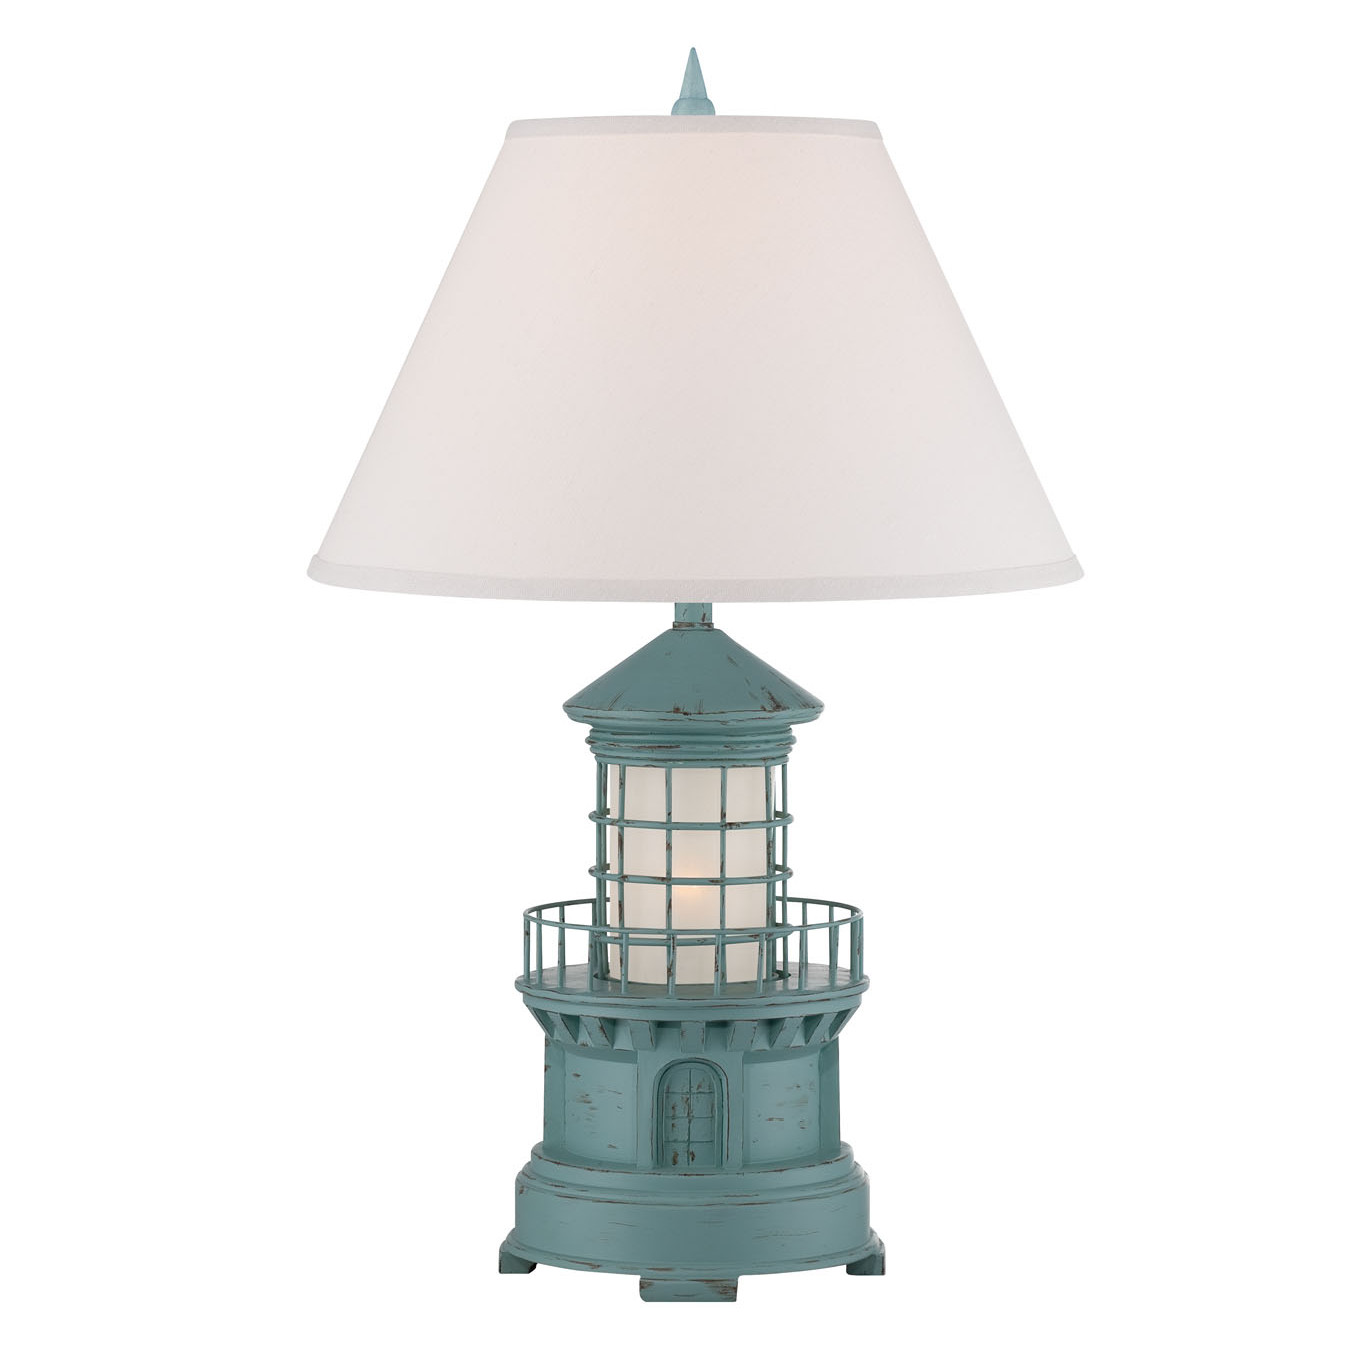 Coastal Lamps Cottage Lighthouse Lamp 3 Colors